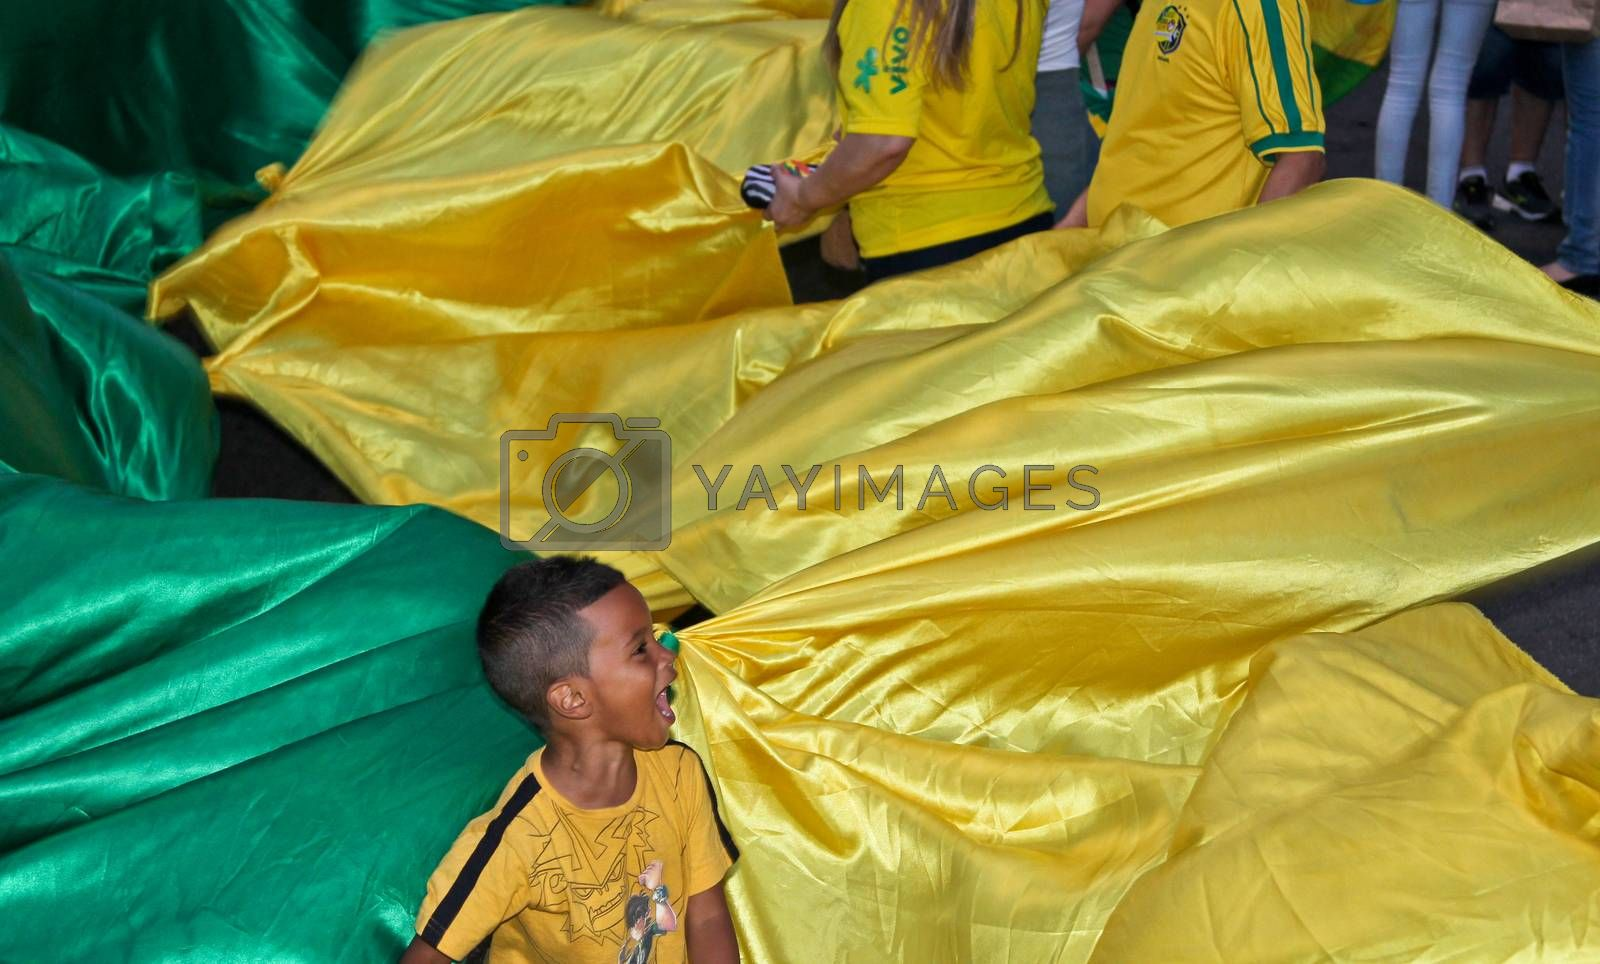 SAO PAULO, BRAZIL - APRIL 12, 2015: One unidentified boy in the middle of brazilian flag at protest against federal government corruption in Sao Paulo Brazil. Protesters call for the impeachment of President Dilma Rousseff.